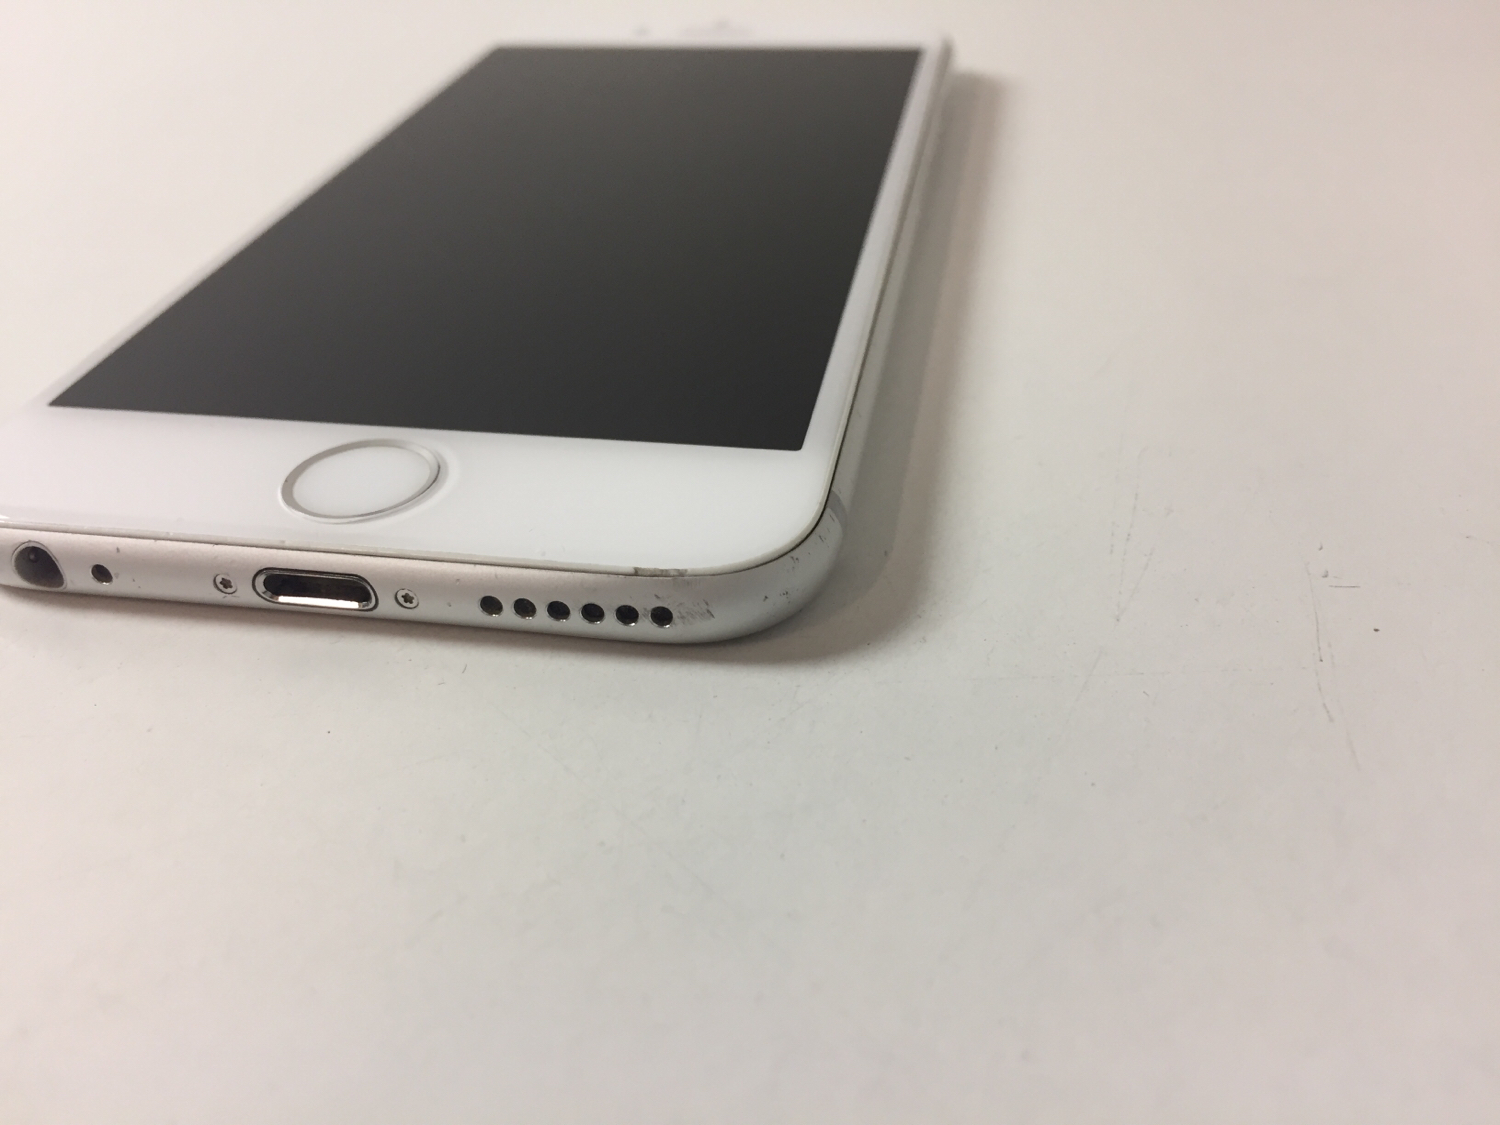 iPhone 6 16GB, 64GB, Silver, Afbeelding 3